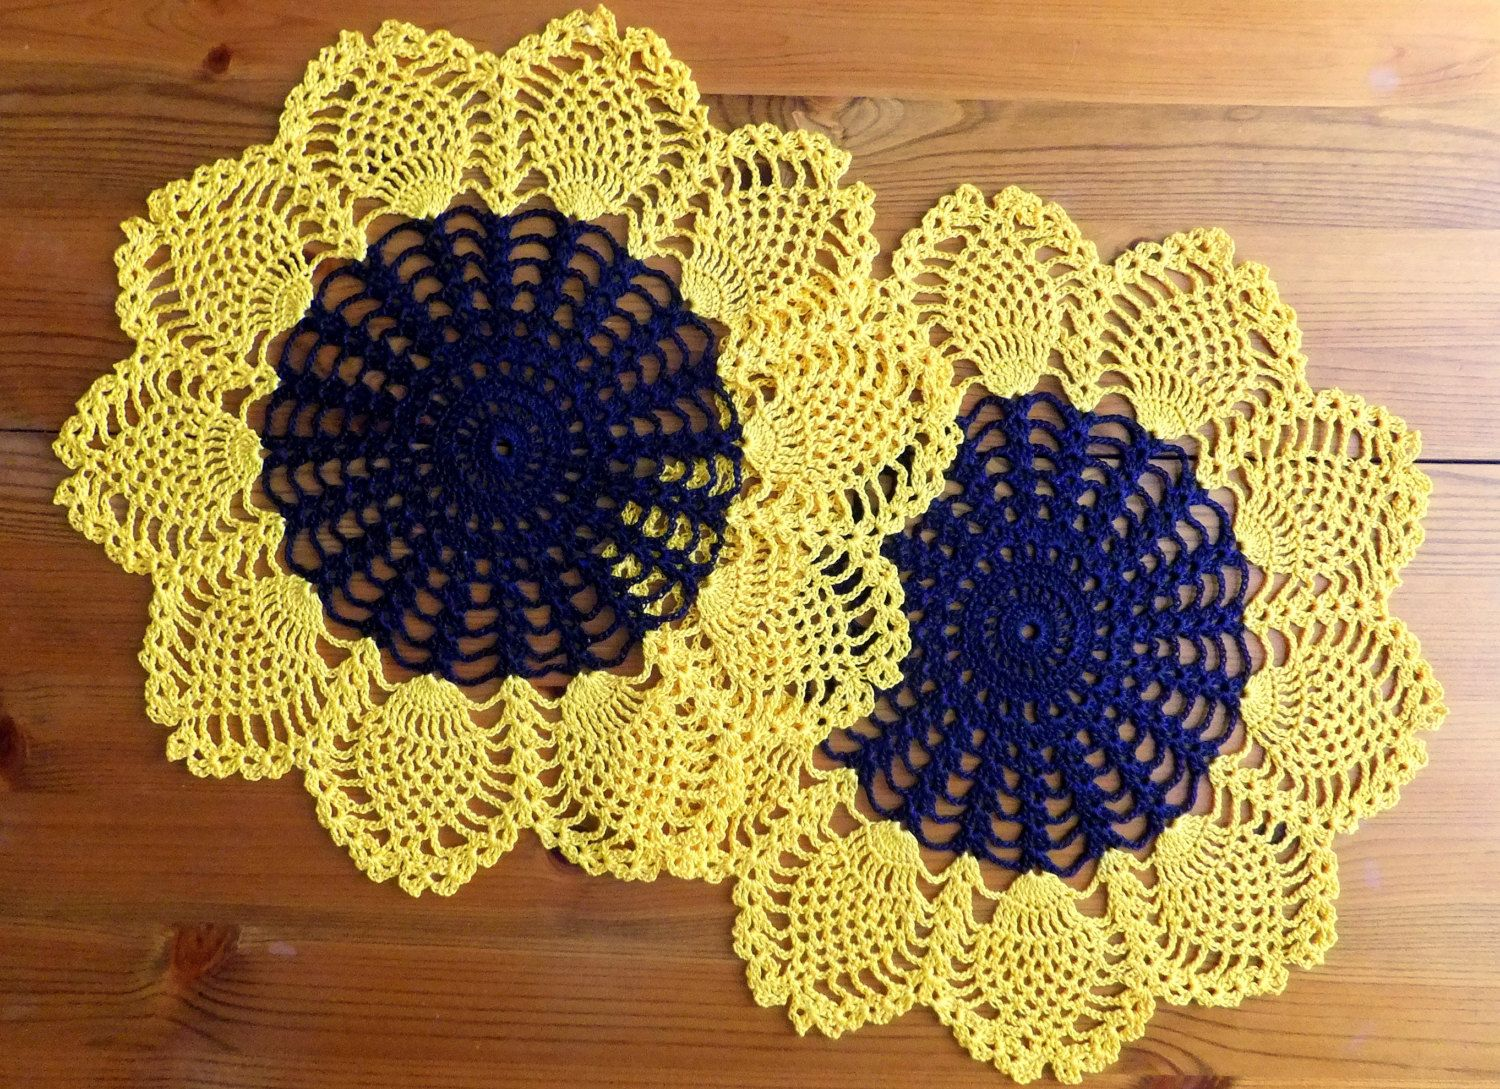 Sunflower doily crochet tablecloth table by MadeByElina on Etsy